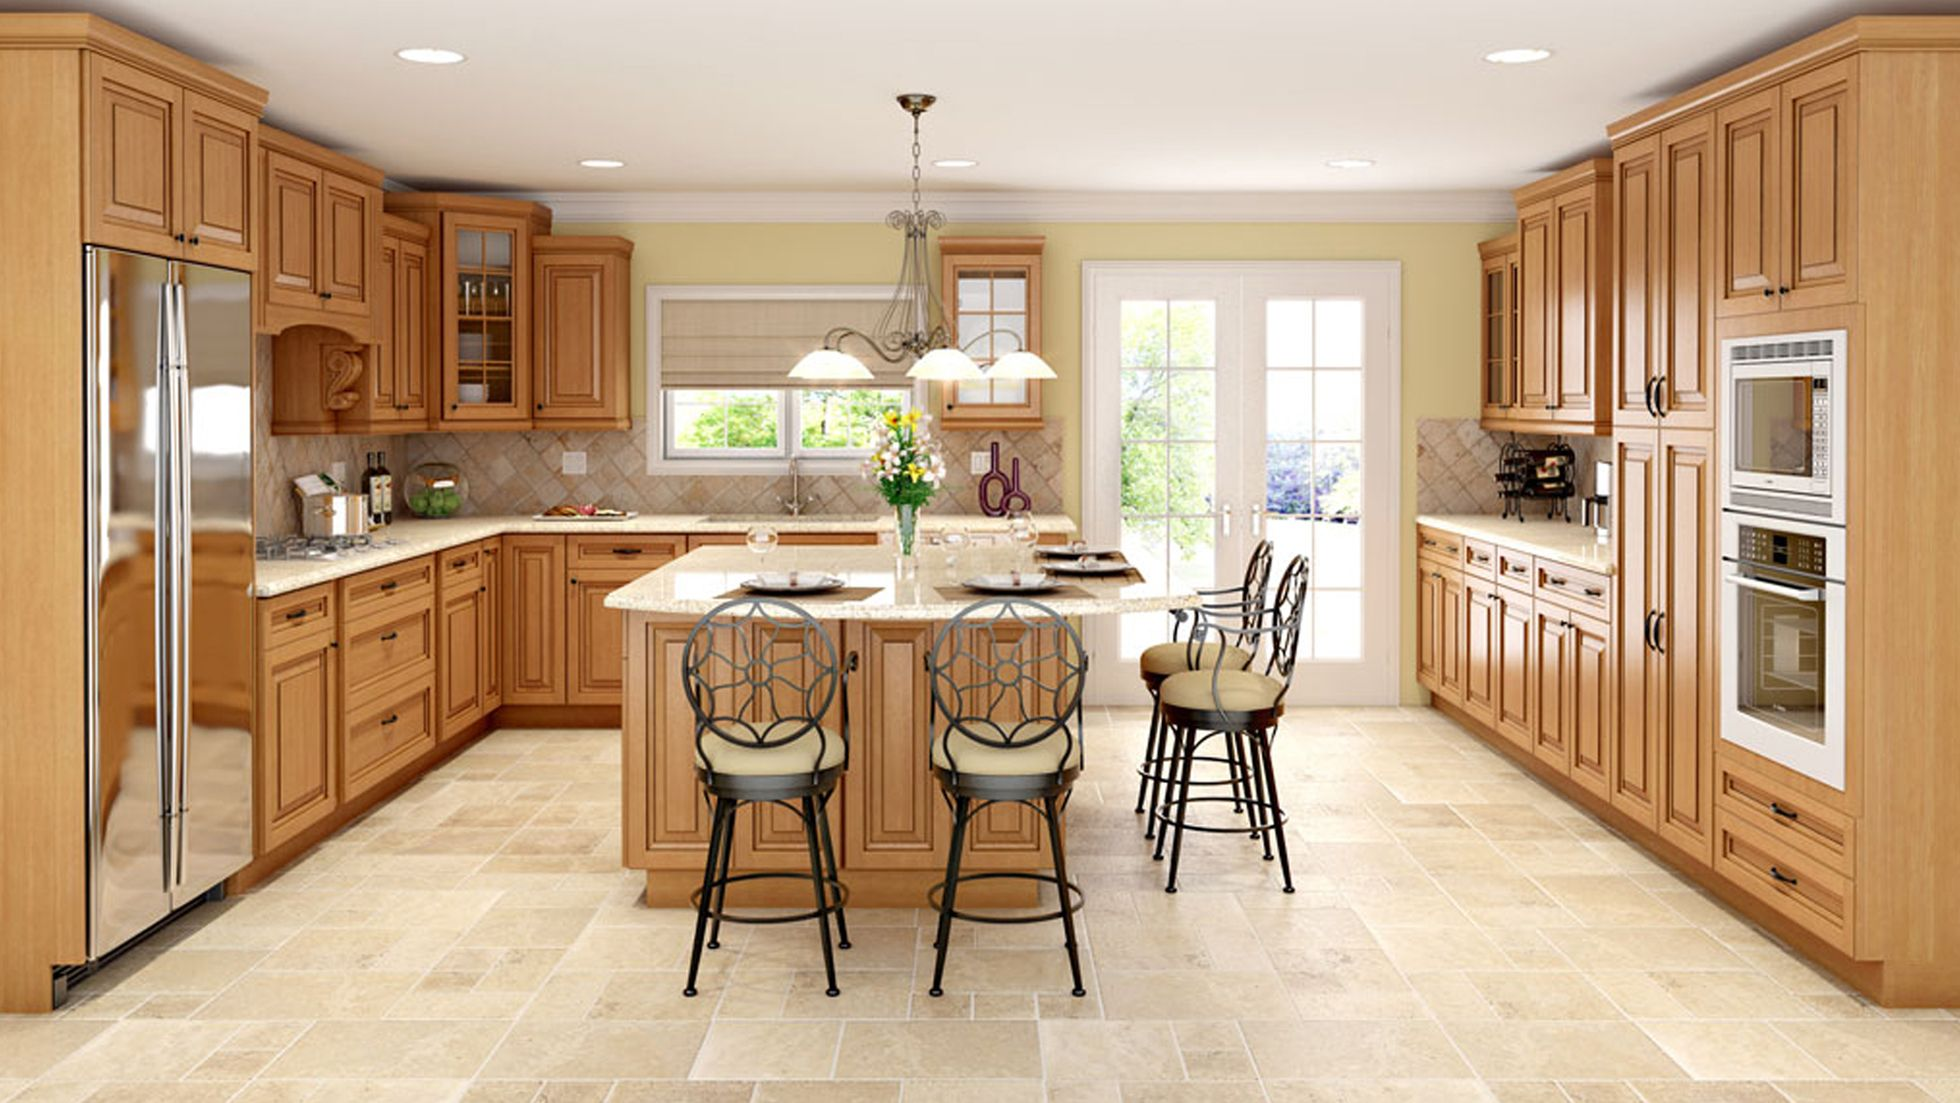 Sahara Sahara S Nutmeg Finish With A Soft Chocolate Gives This Classic Raised Panel A Tim Kitchen Cabinets Espresso Kitchen Cabinets Wholesale Kitchen Cabinets